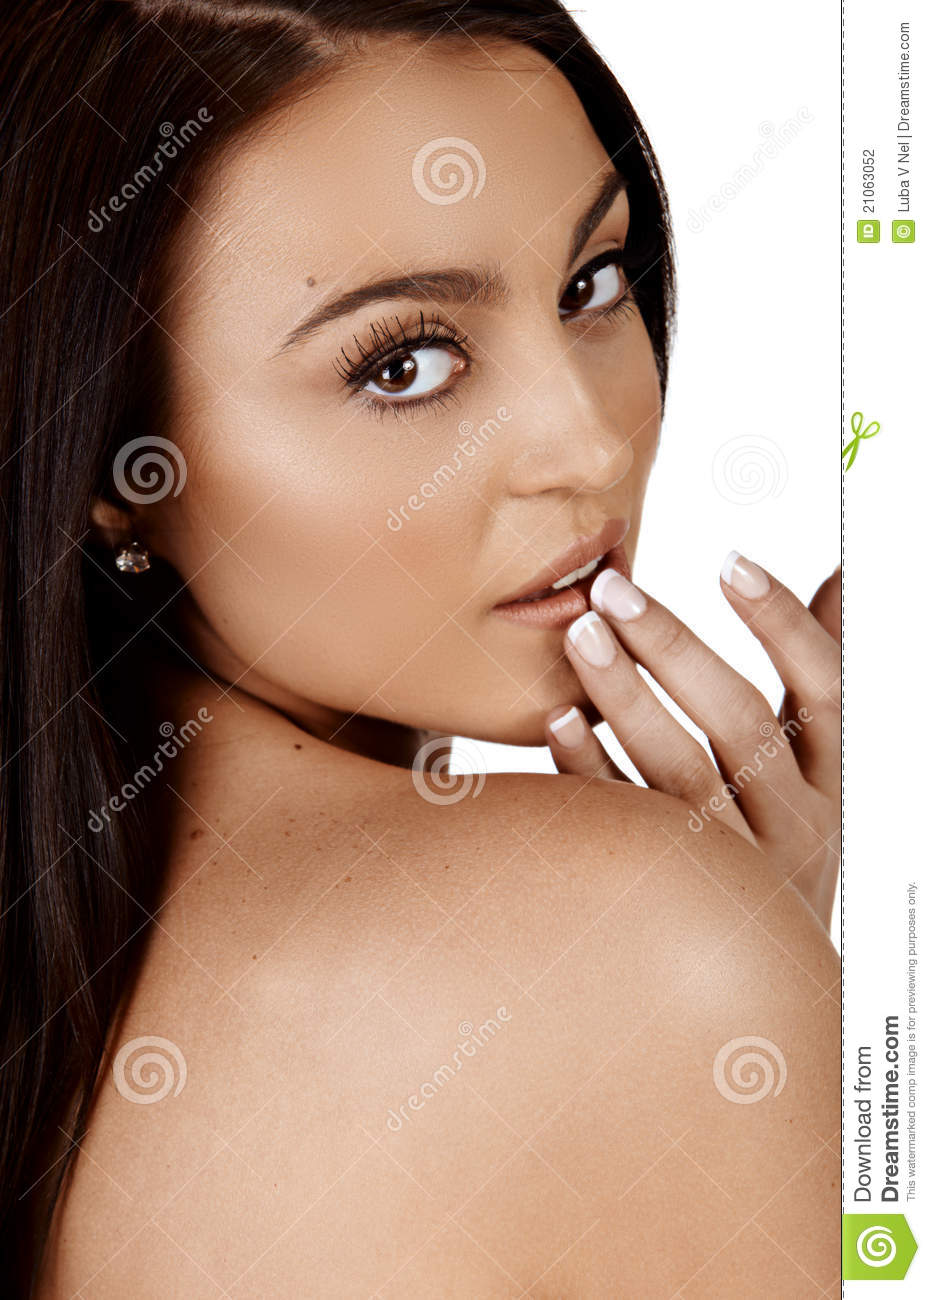 Beautiful Tanned Woman Stock Photography Image 21063052